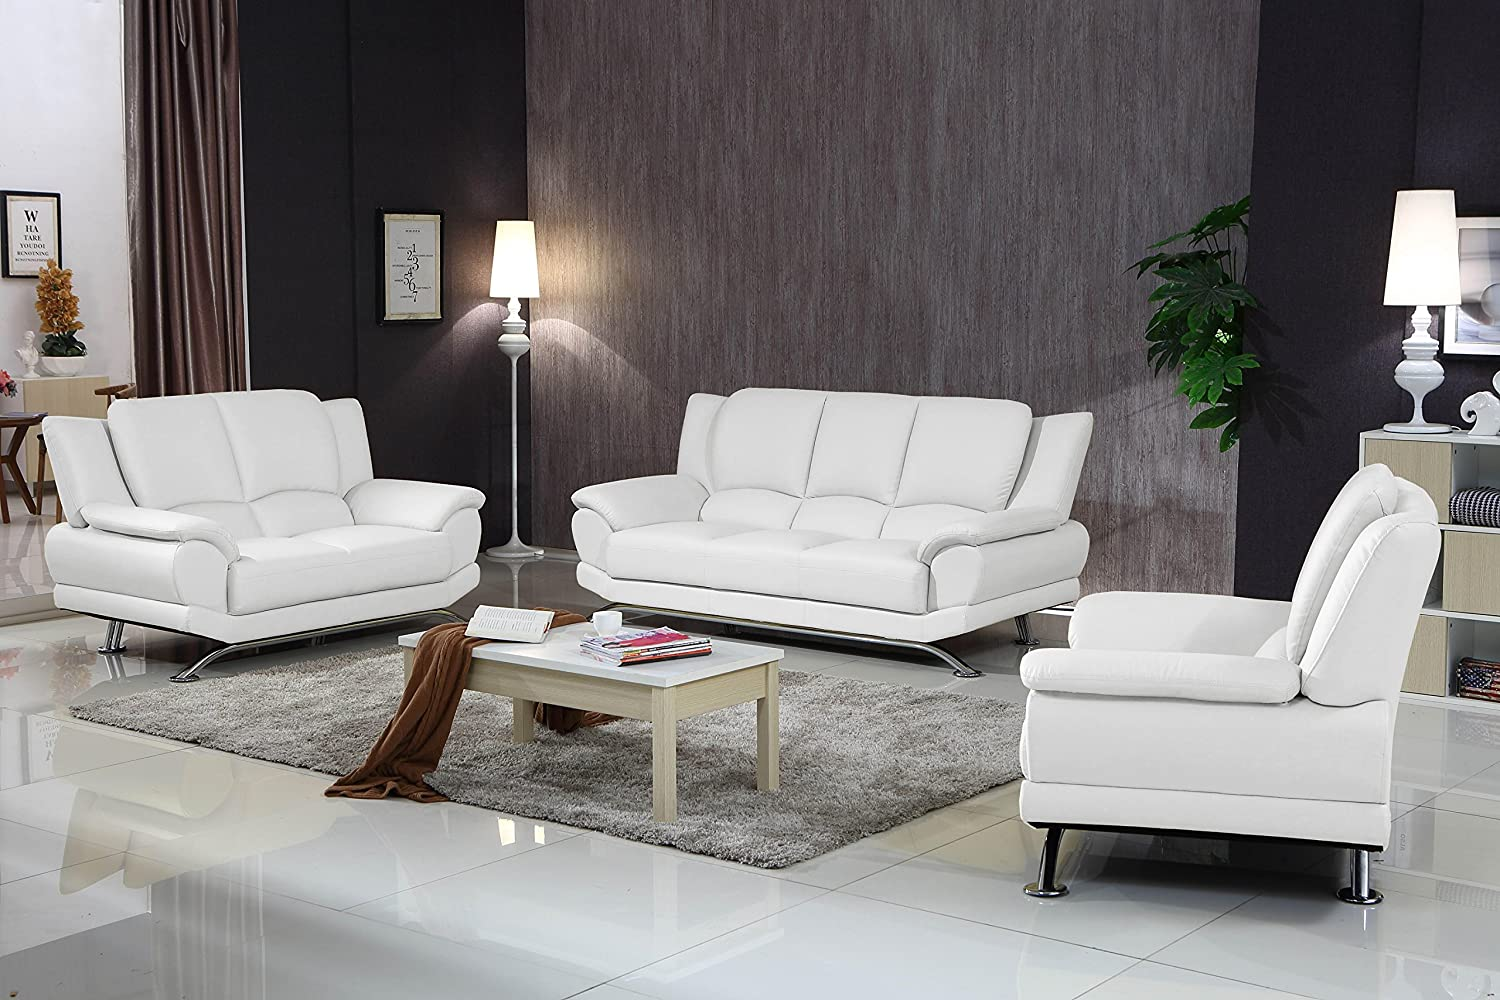 Designer Living Room Sets Heppe Digitalfuturesconsortium Org